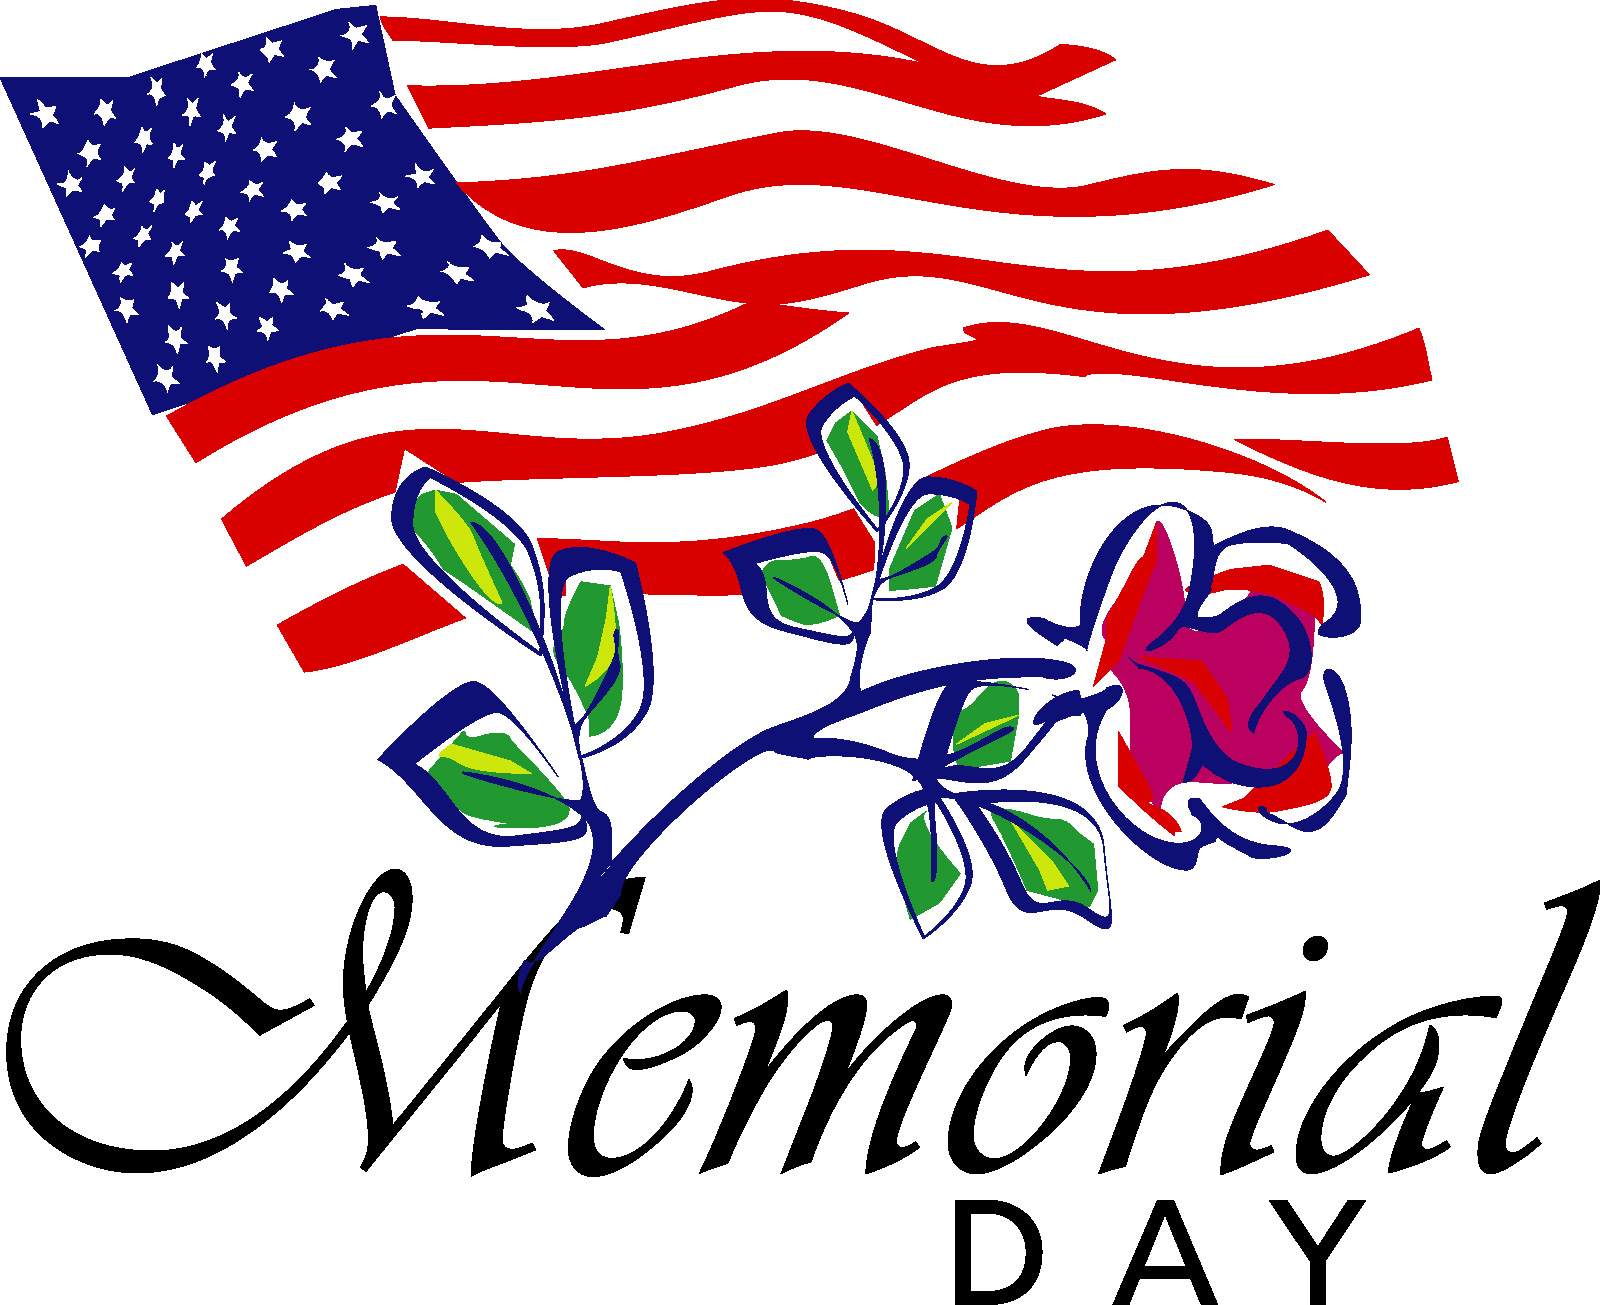 Happy Memorial Day 2018 Images, Quotes, Wishes, Clipart, Coloring ...